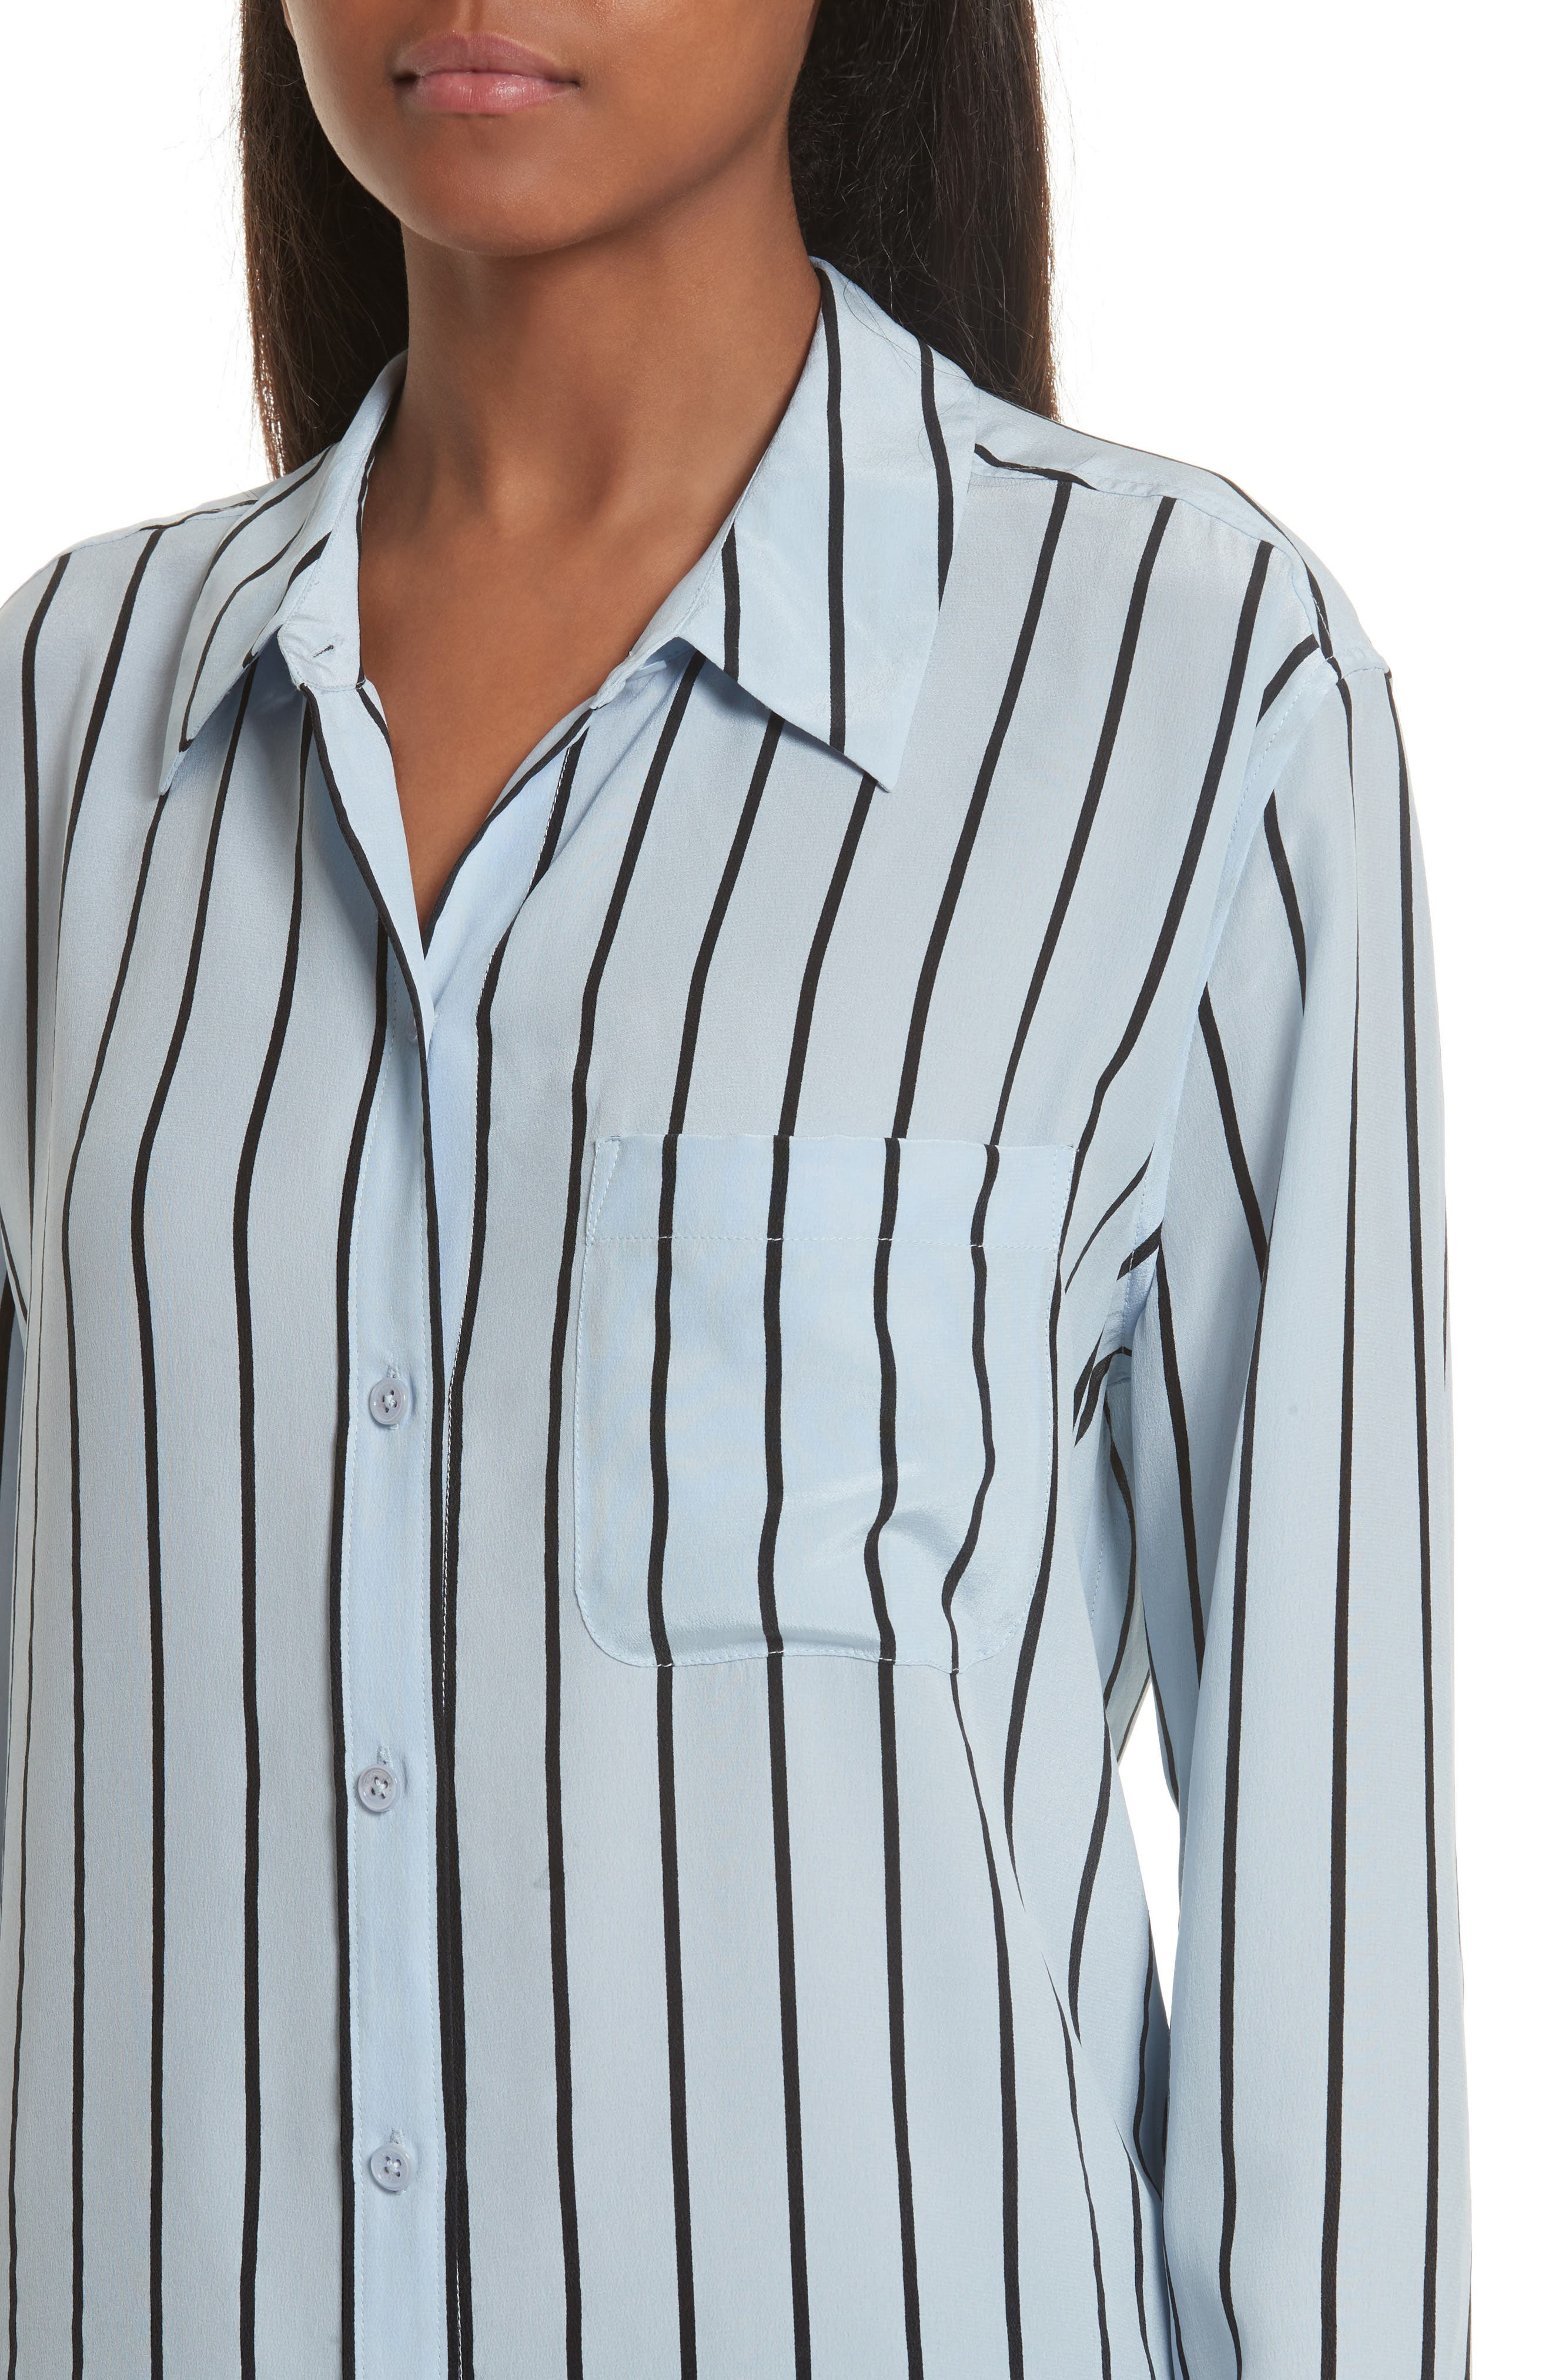 Daddy Oversize Stripe Silk Shirt,                             Alternate thumbnail 4, color,                             Pear Blue/ True Black